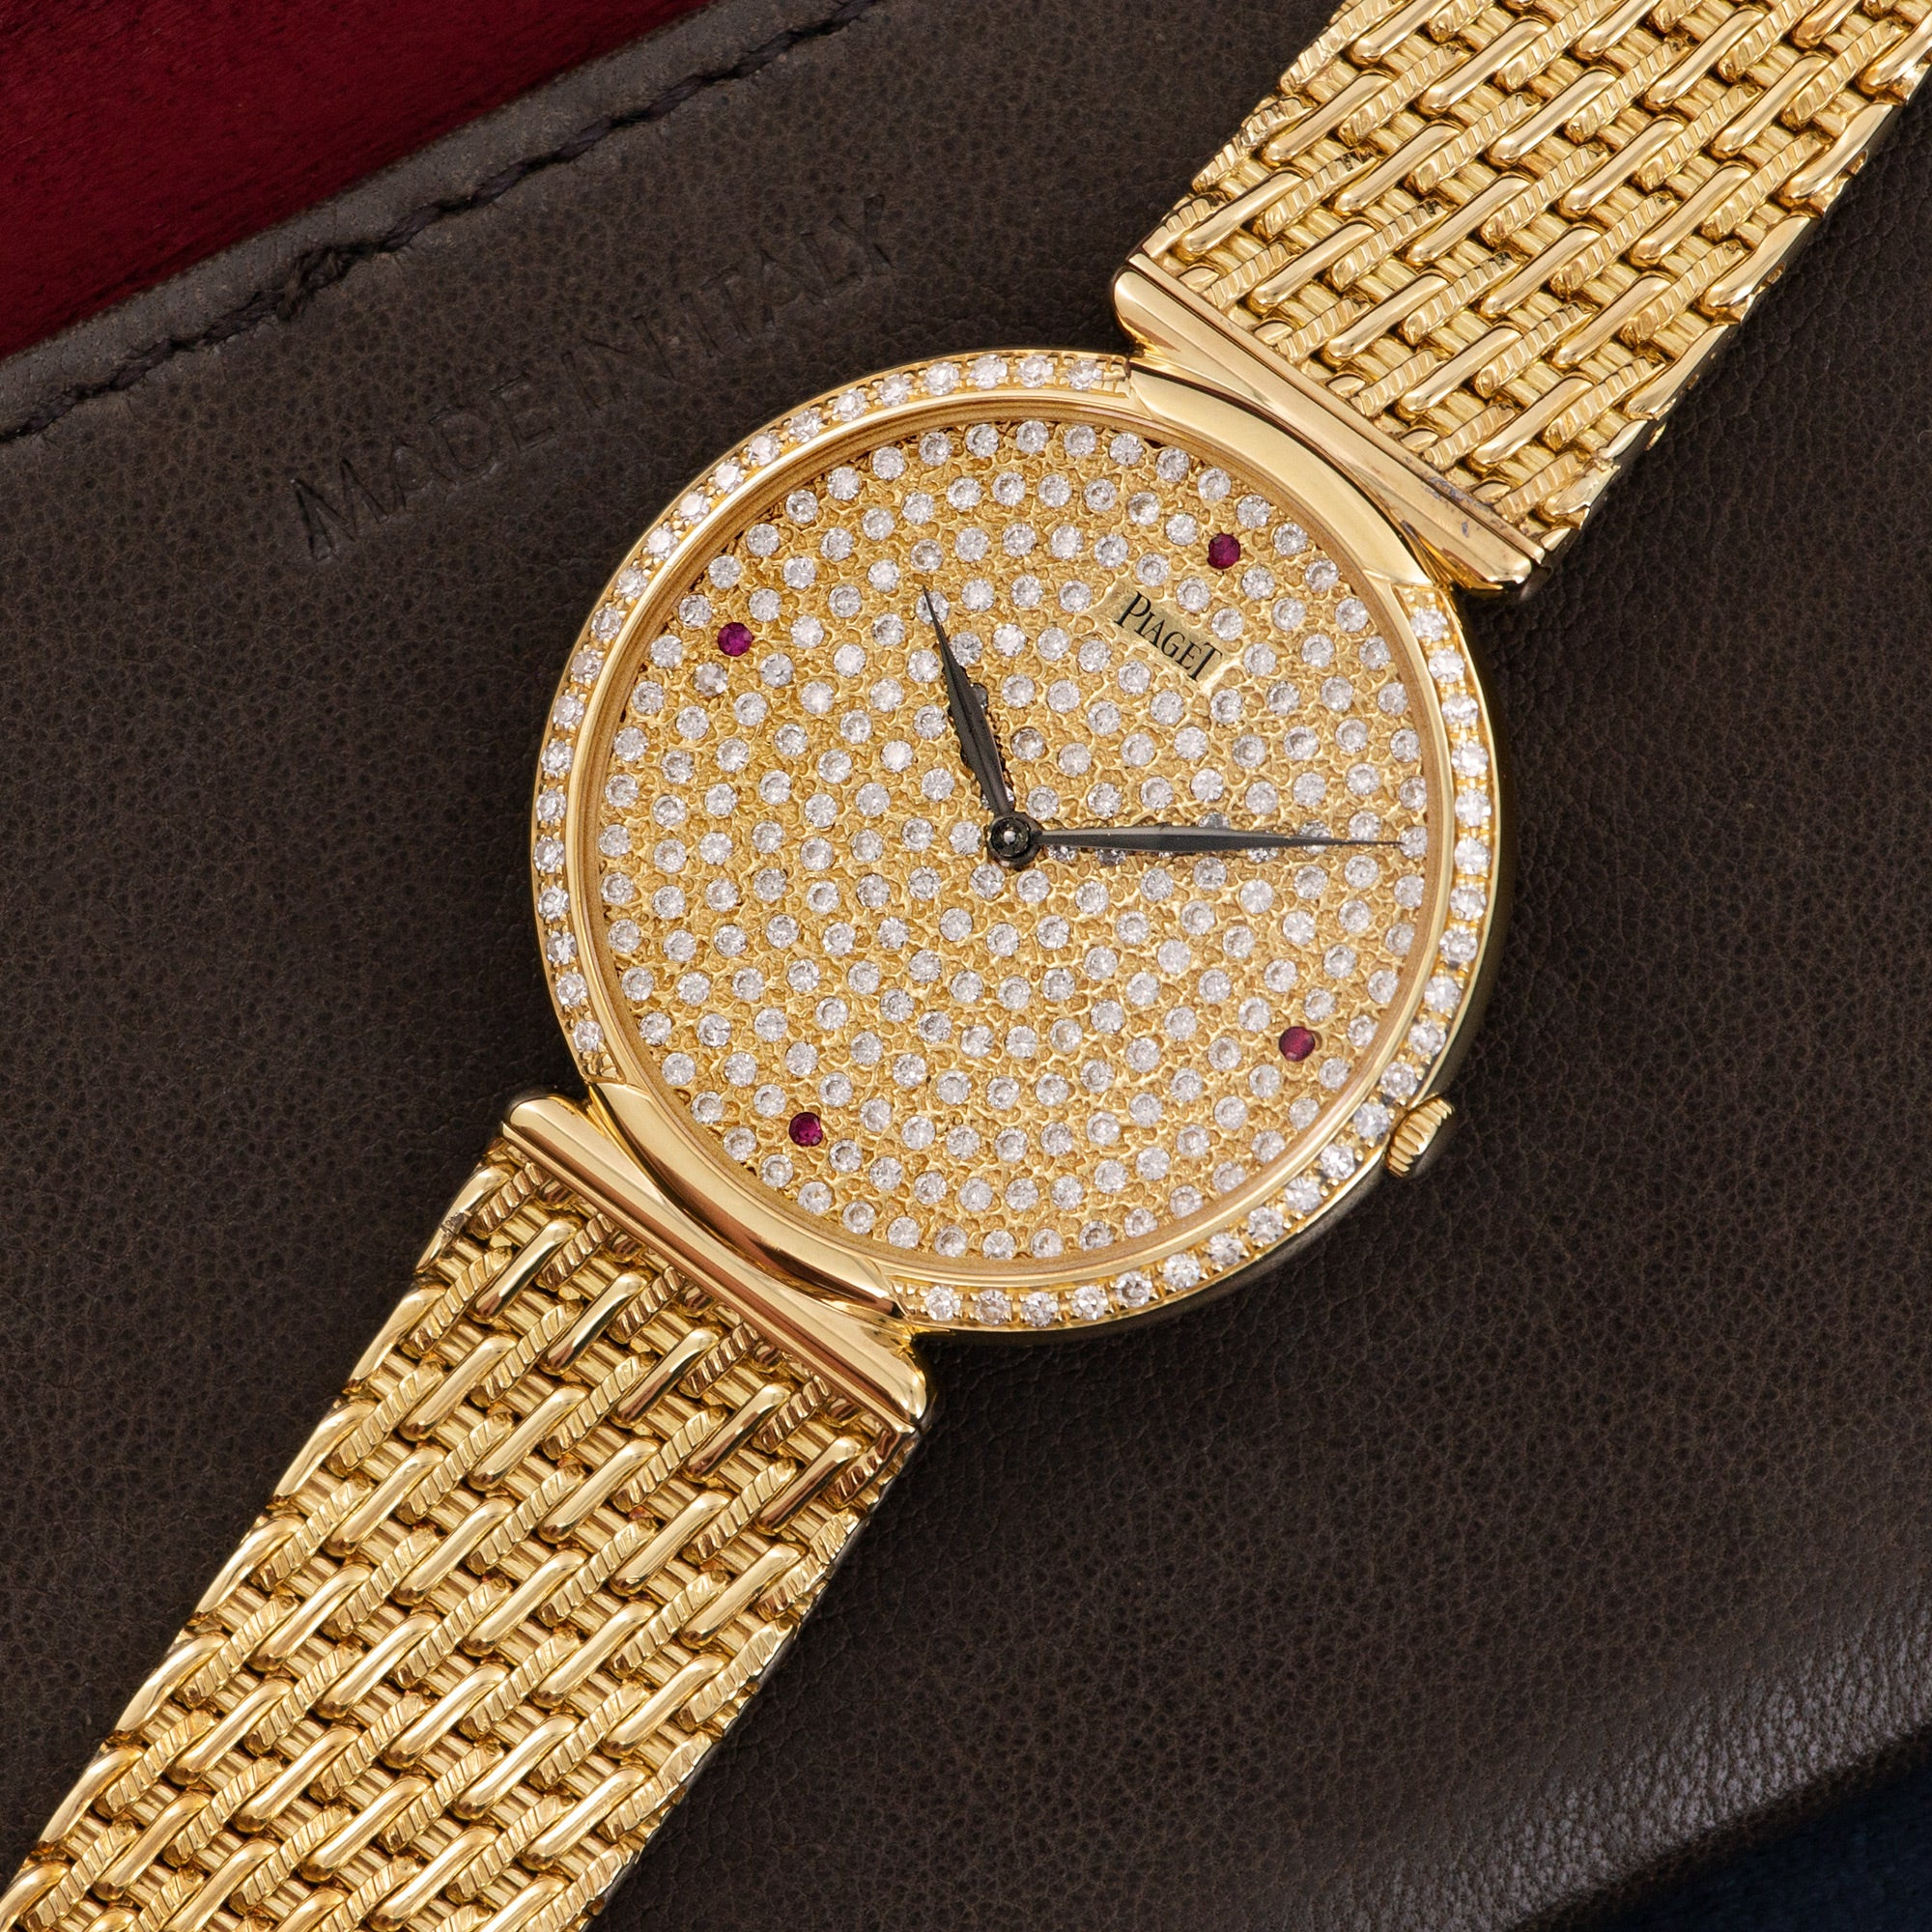 Piaget Vintage 20252 18k YG  Excellent Unisex 18k YG Pave Diamond with Rubies 31mm Manual 1980s Yellow Gold Bracelet Leather Travel Case